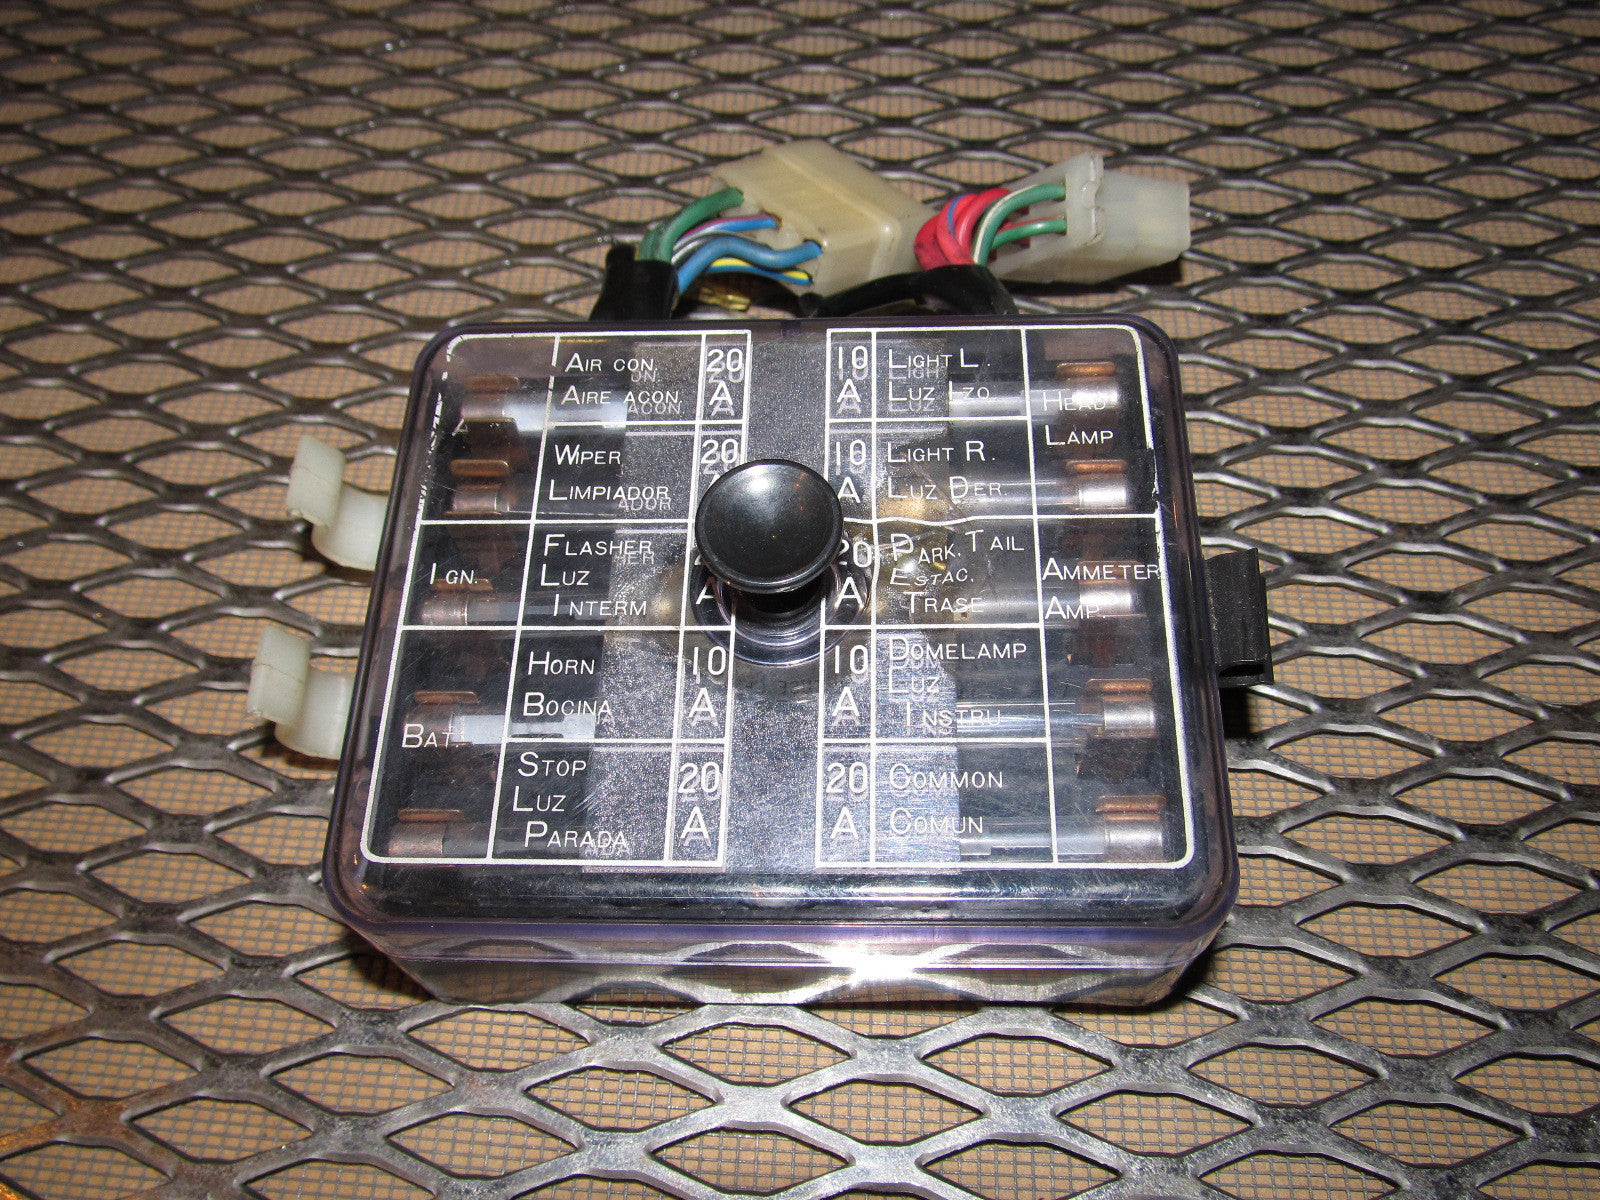 1973 Datsun 240z Fuse Box Circuit Wiring And Diagram Hub 25 Images 1969